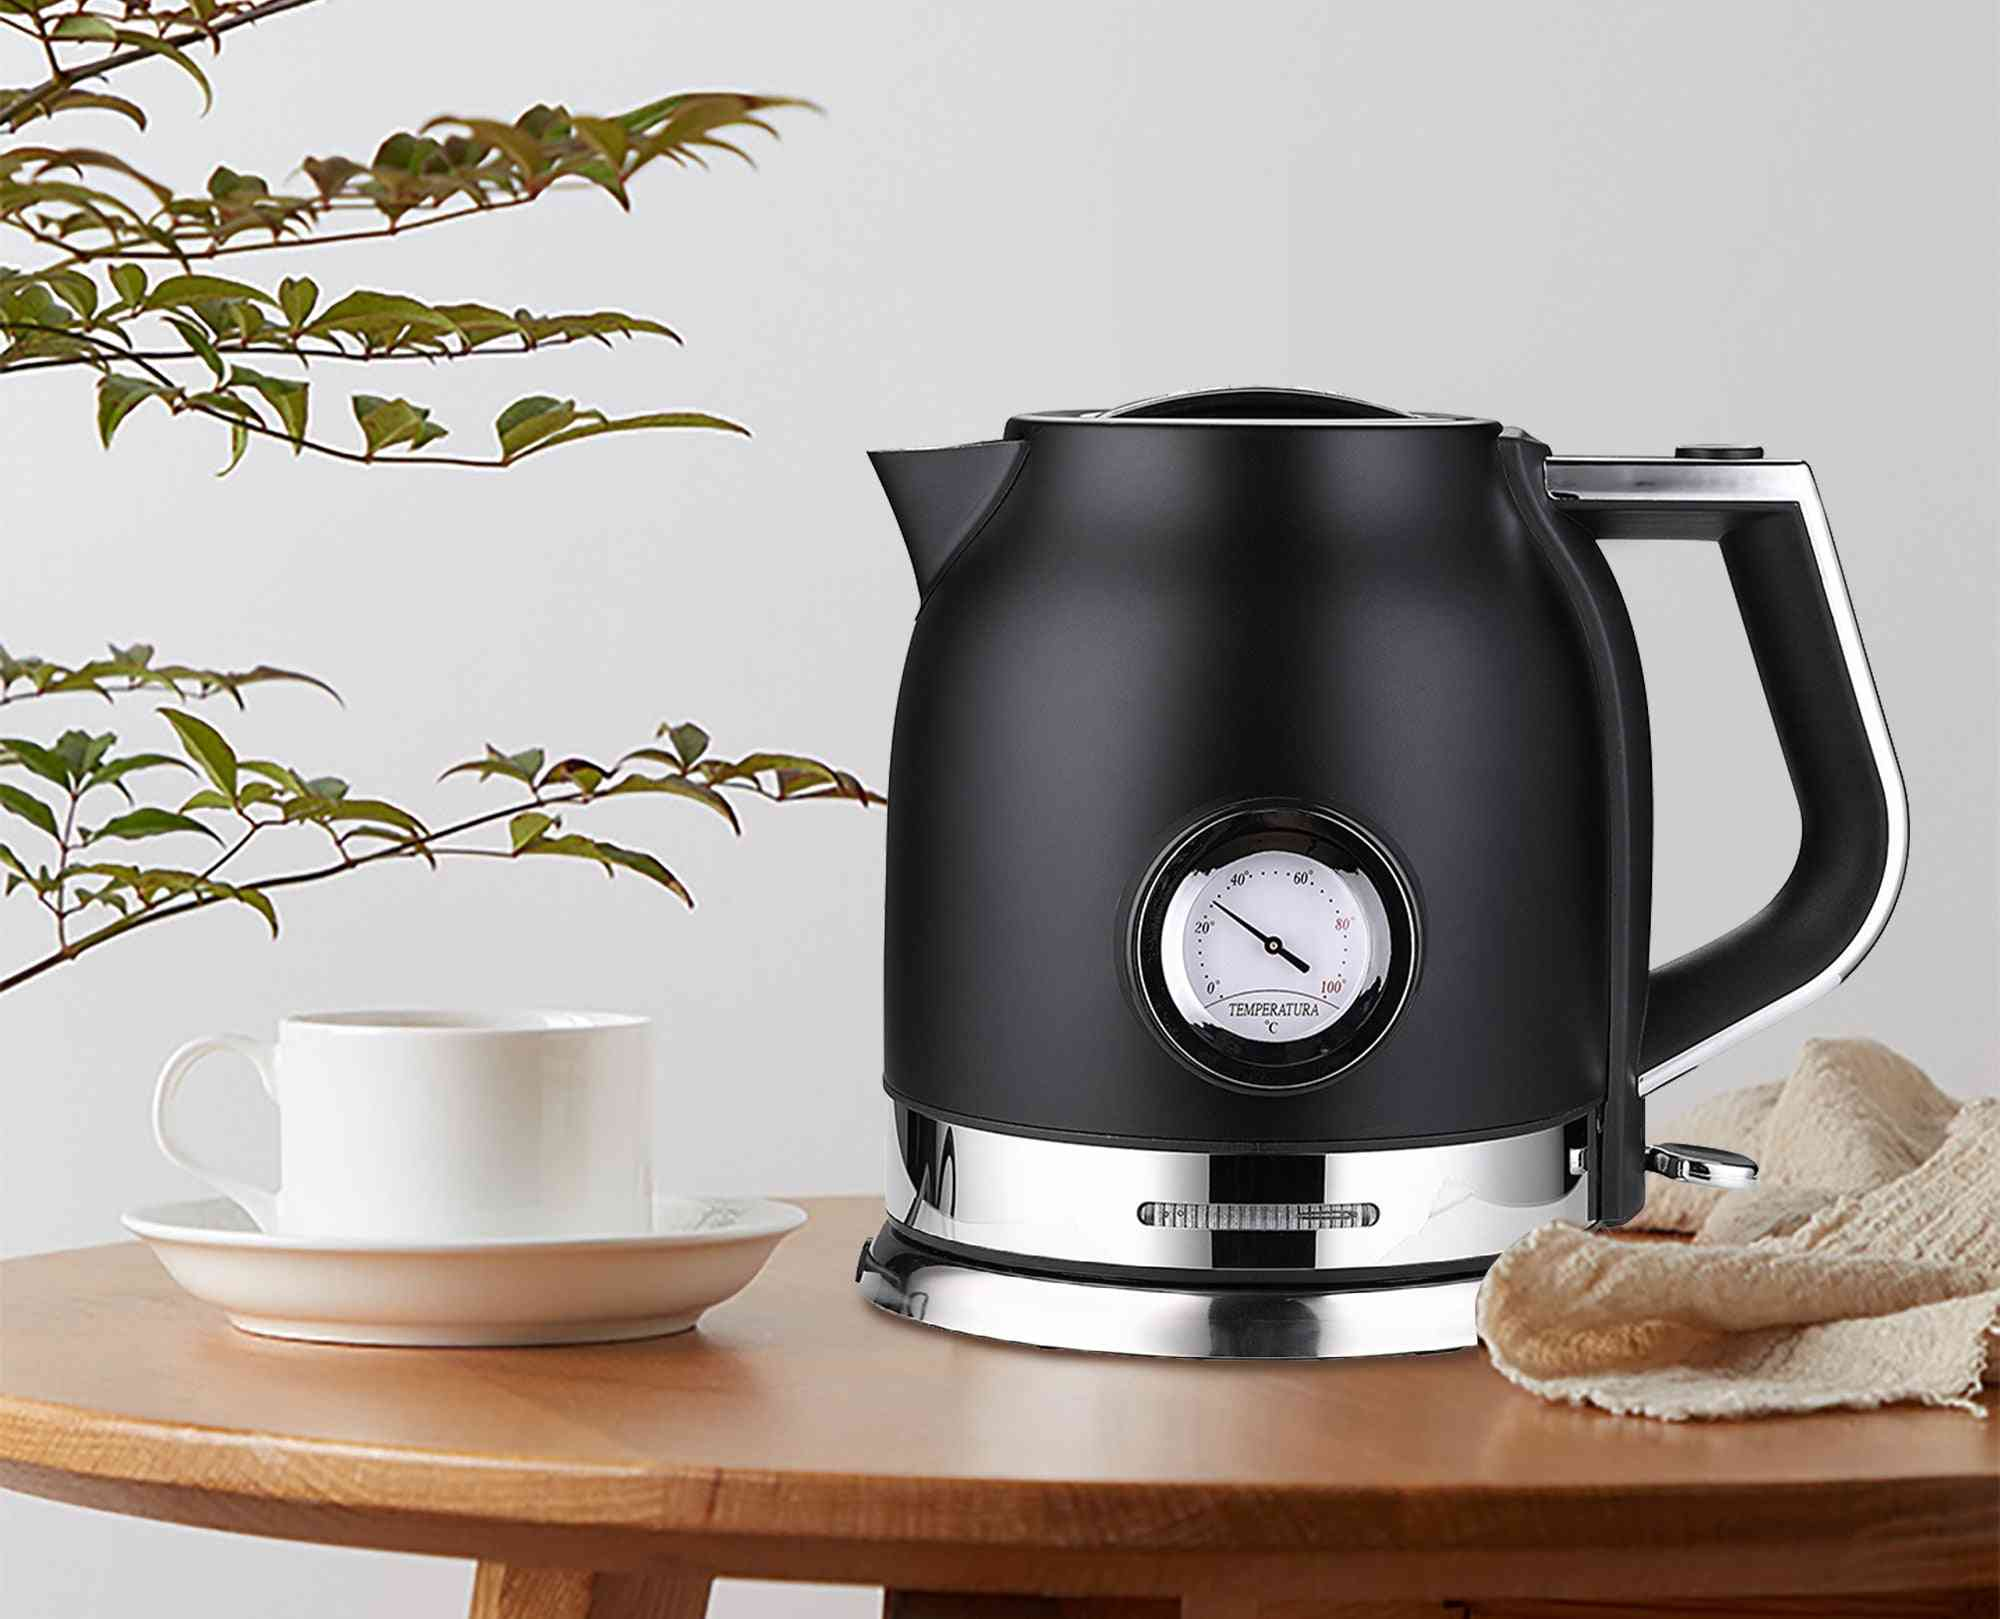 Electric Kettle Stainless Steel, Kitchen Smart Whistle, Samovar Tea Pot With Water Temperature Control Meter